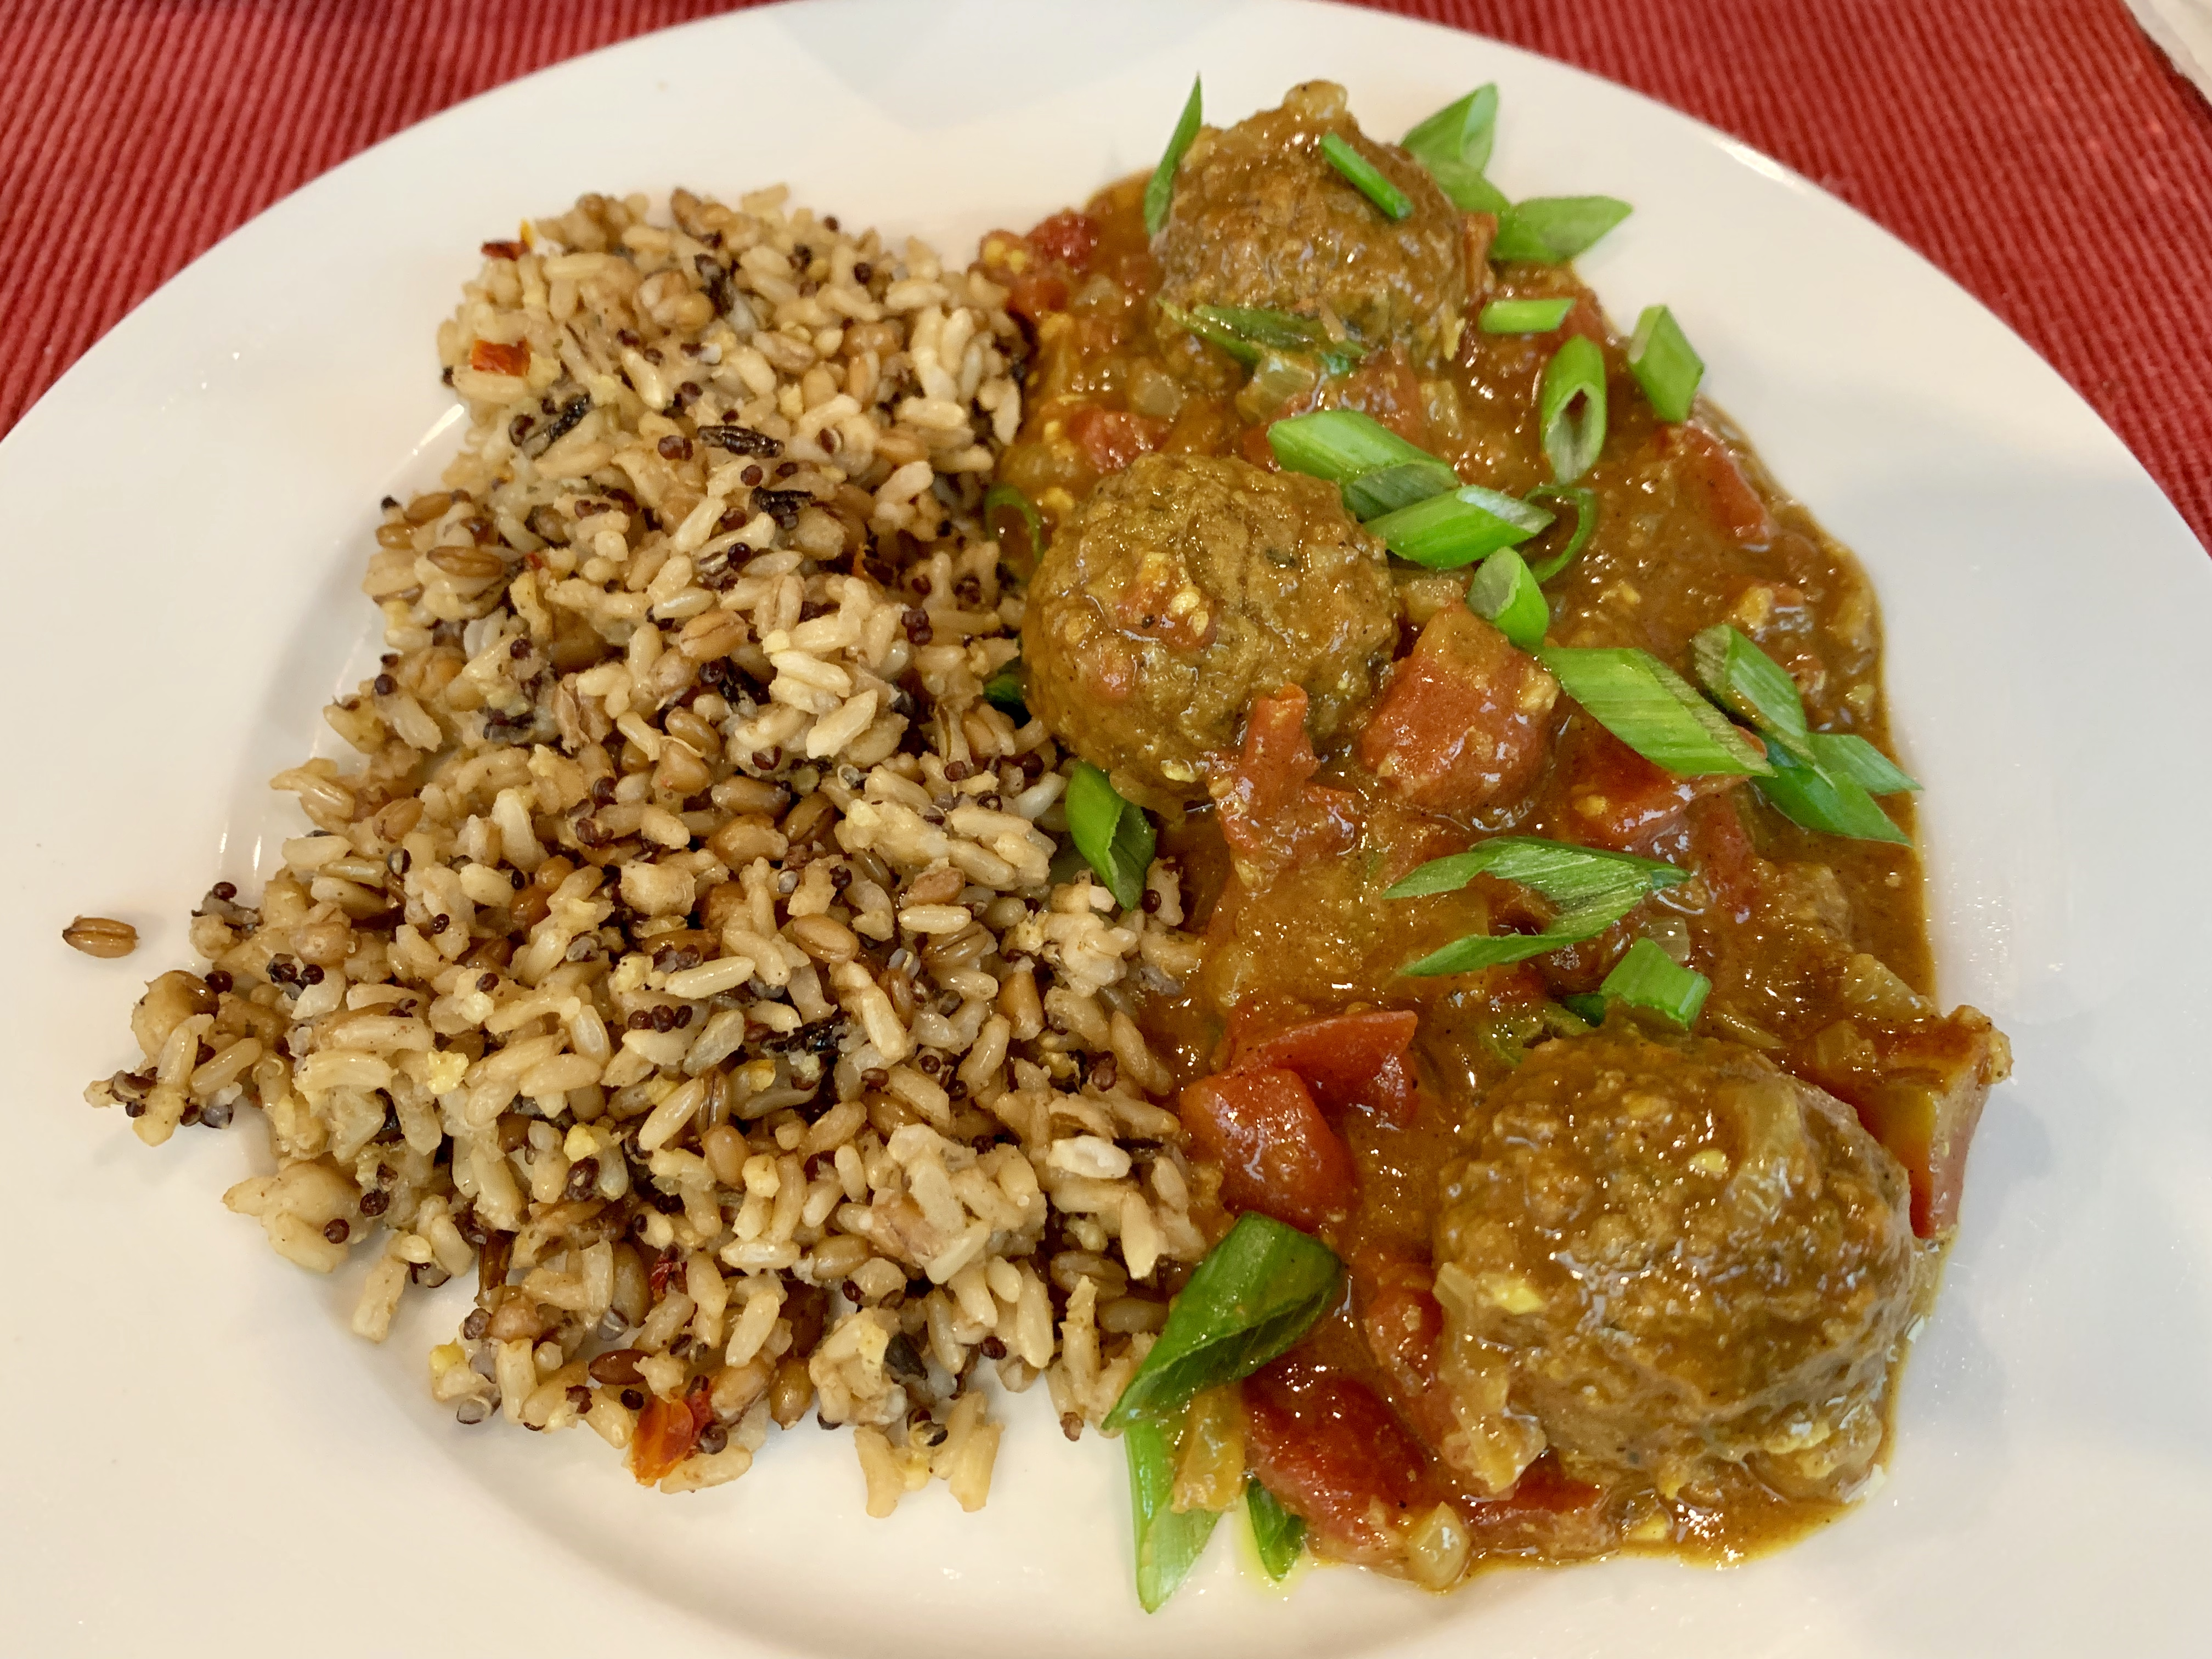 """Quick to make, but full of flavor, this vegetarian curry features meatless vegetable meatballs. """"My mother-in-law is Indian and let me in on a secret: The vegetable balls from IKEA® make for a great and ridiculously easy vegetarian kofta curry,"""" says Diana Moutsopoulos. """"This is ready in just about 30 minutes, making it perfect for a weeknight. Serve with basmati rice."""""""